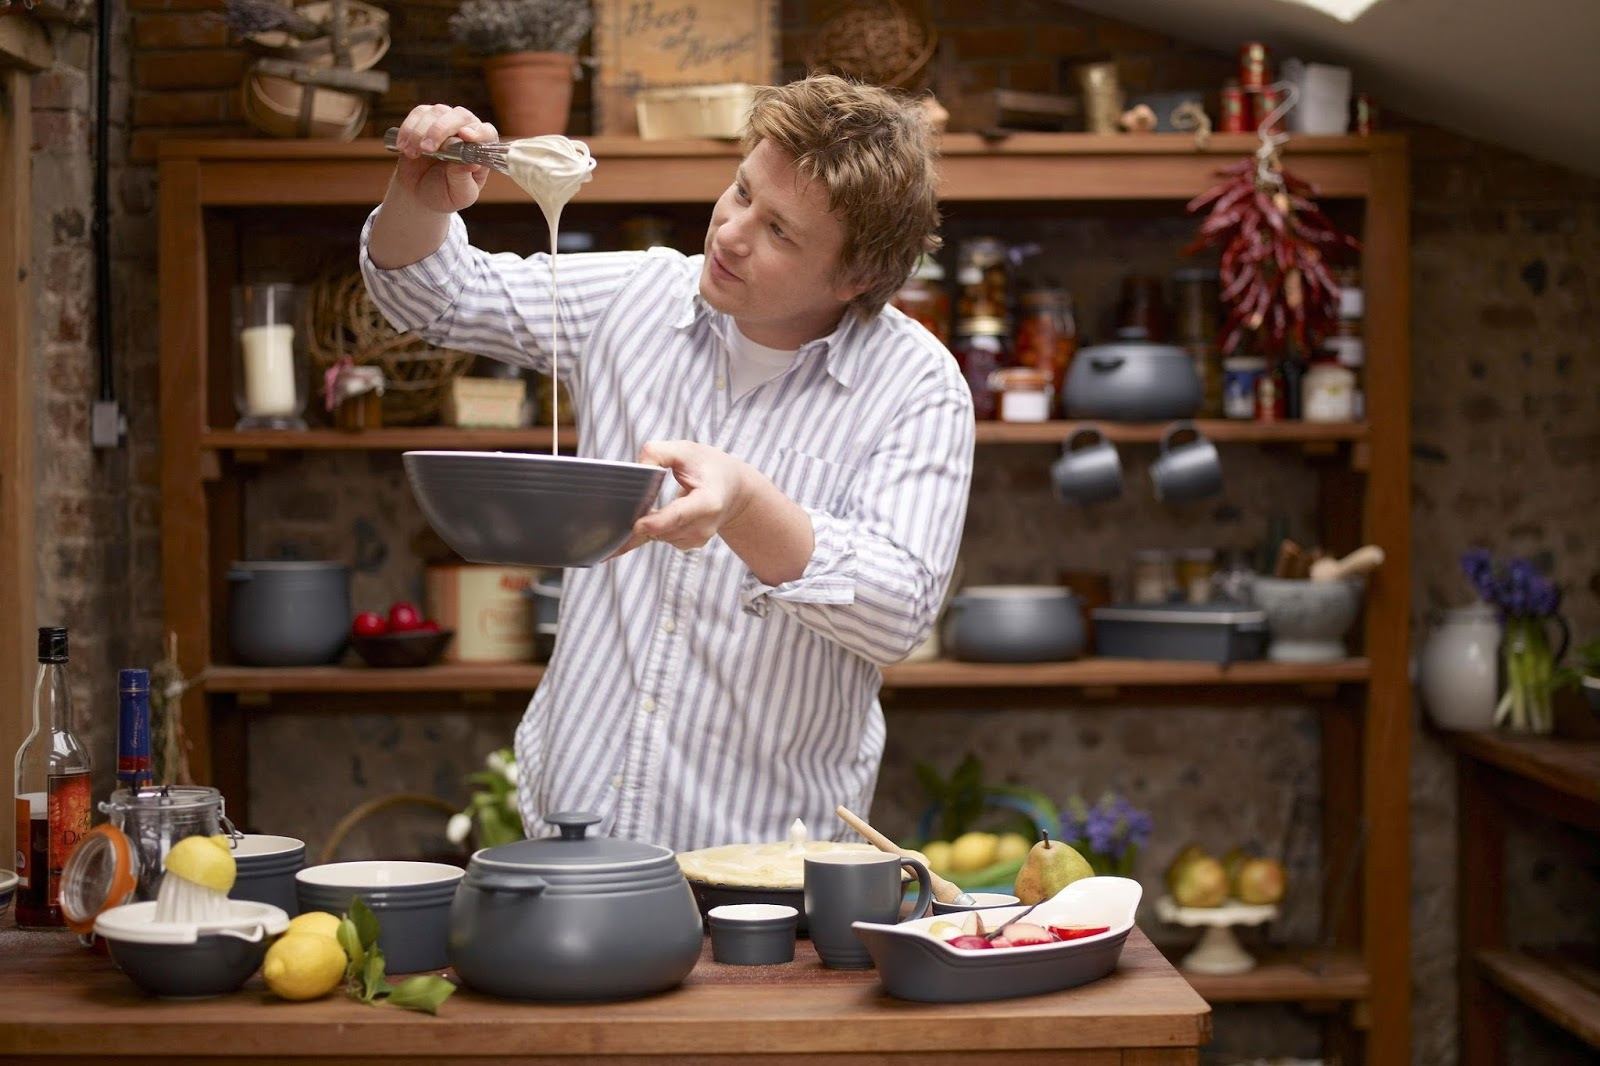 jamie oliver at home ep 4 gardening and cooking. Black Bedroom Furniture Sets. Home Design Ideas